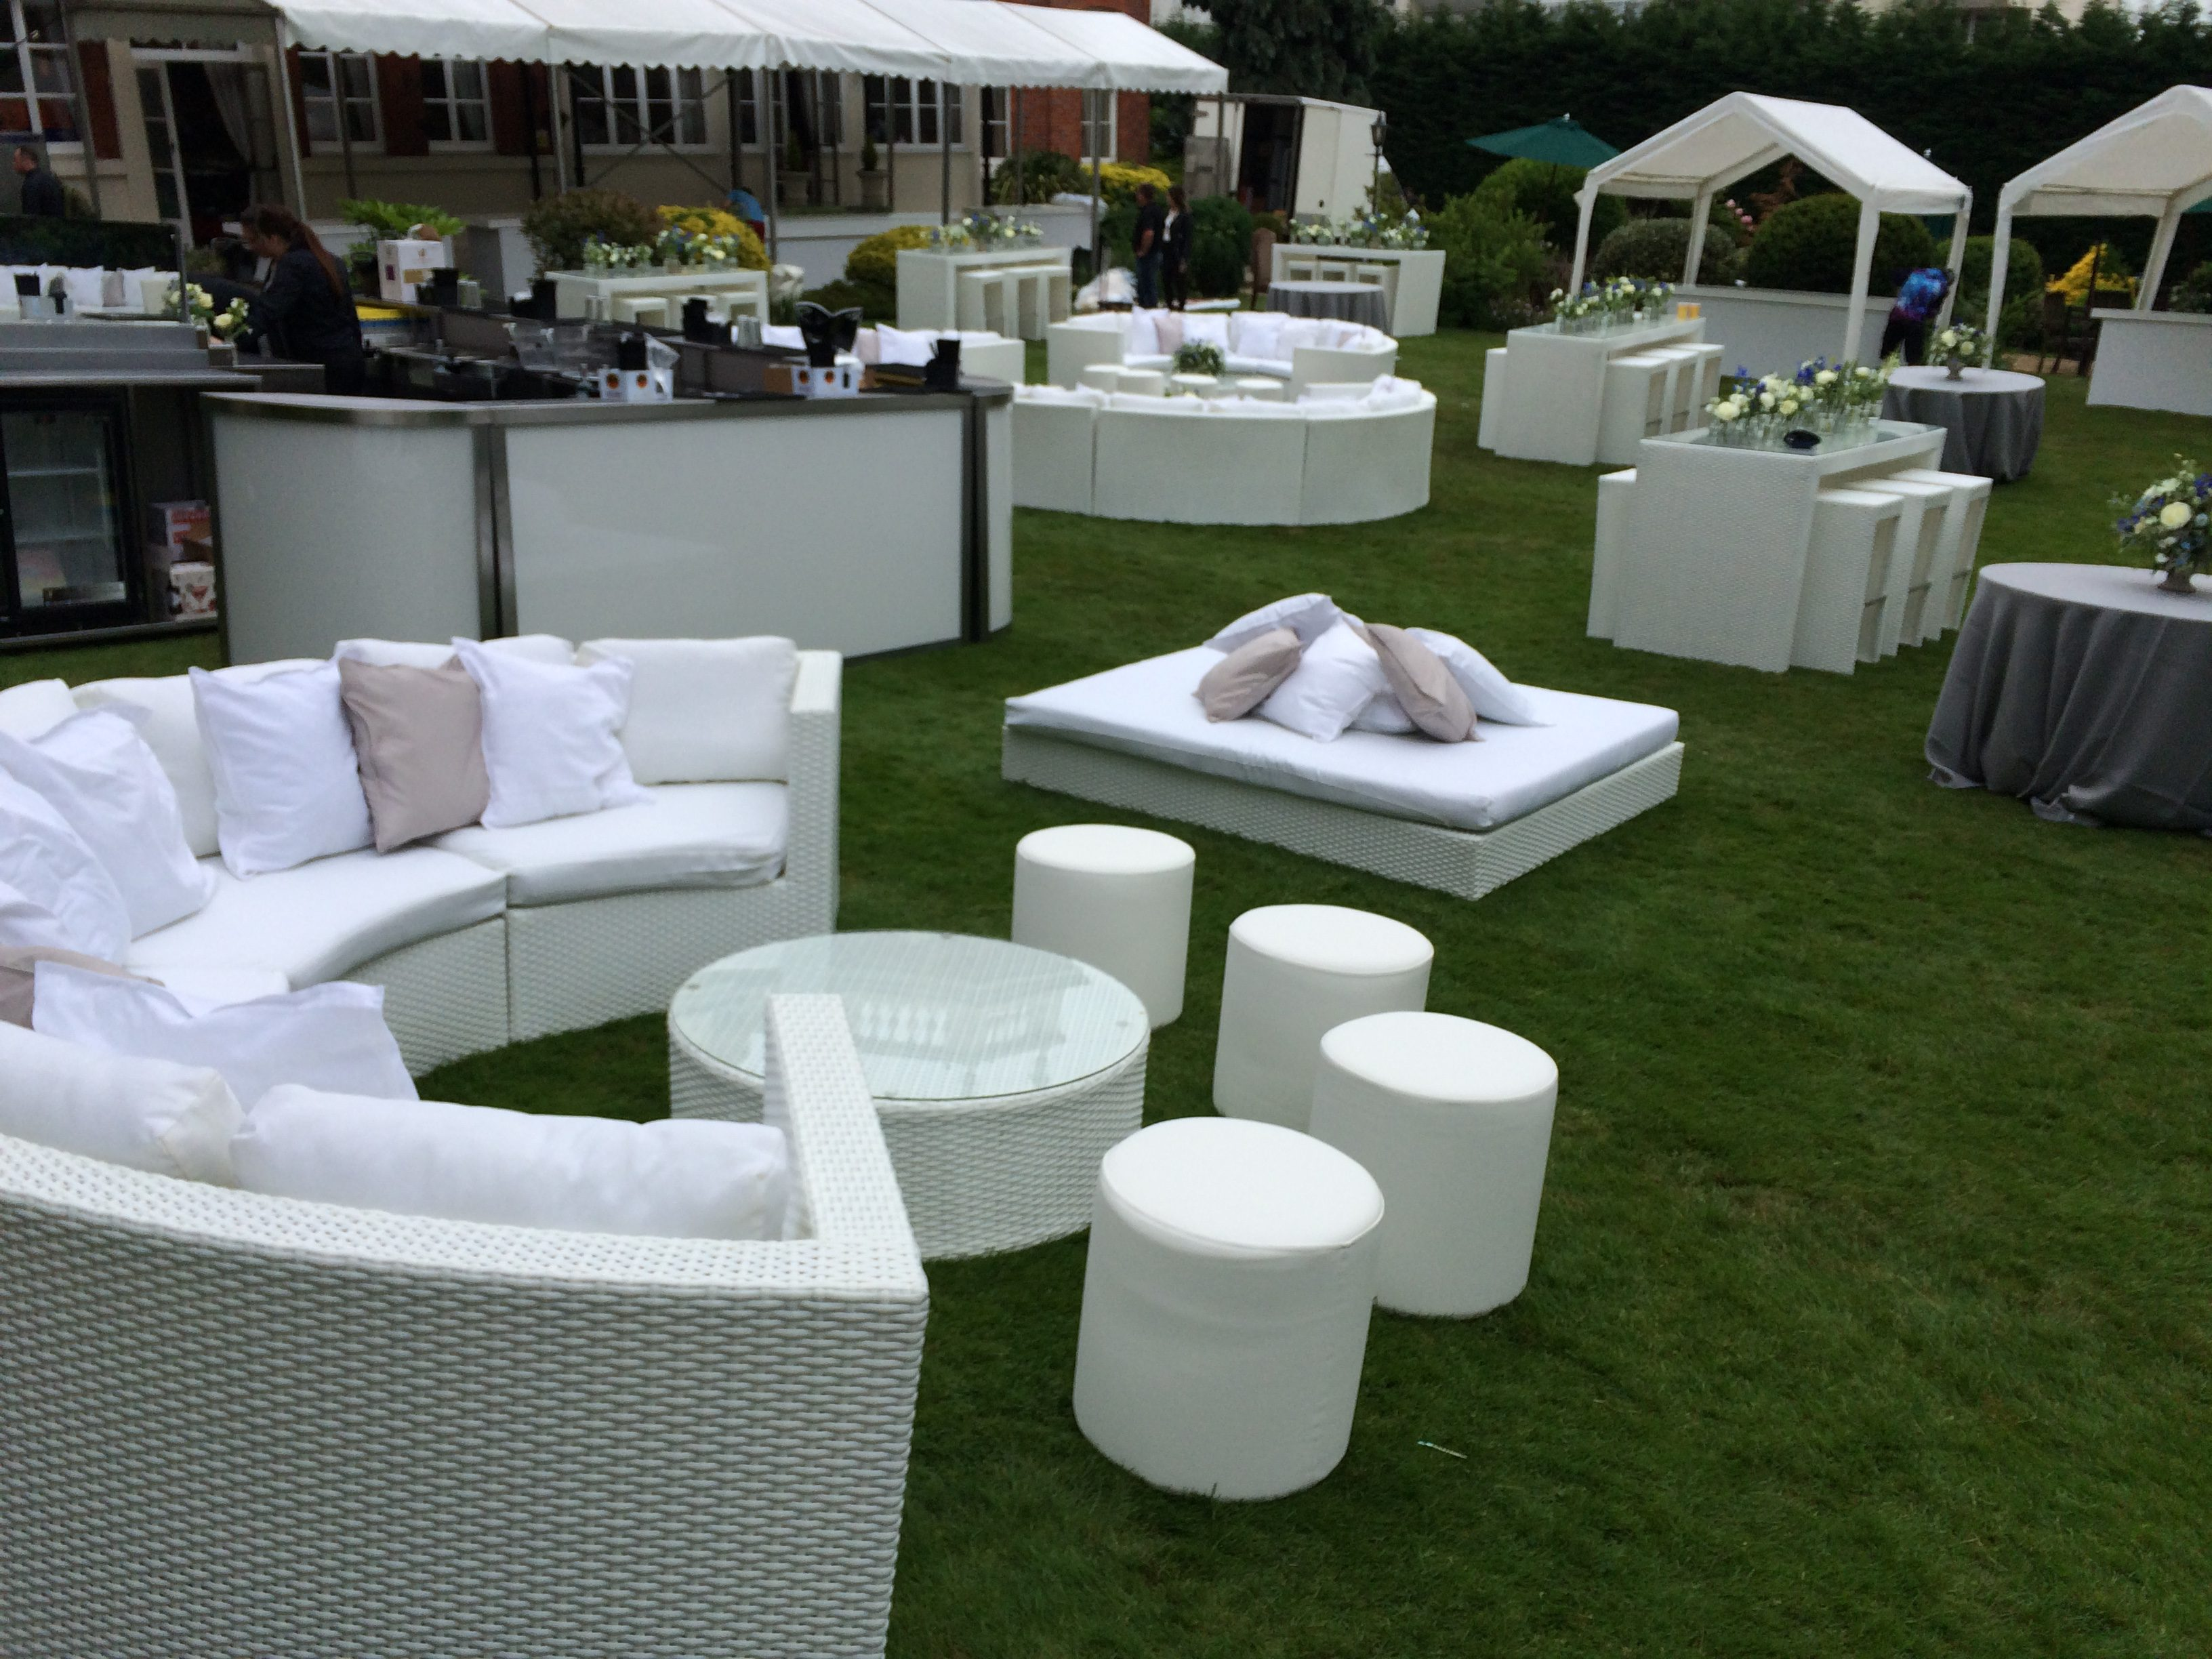 White rattan furniture and faux leather poufs hired for Bar Mitzvah at Hendon Hall